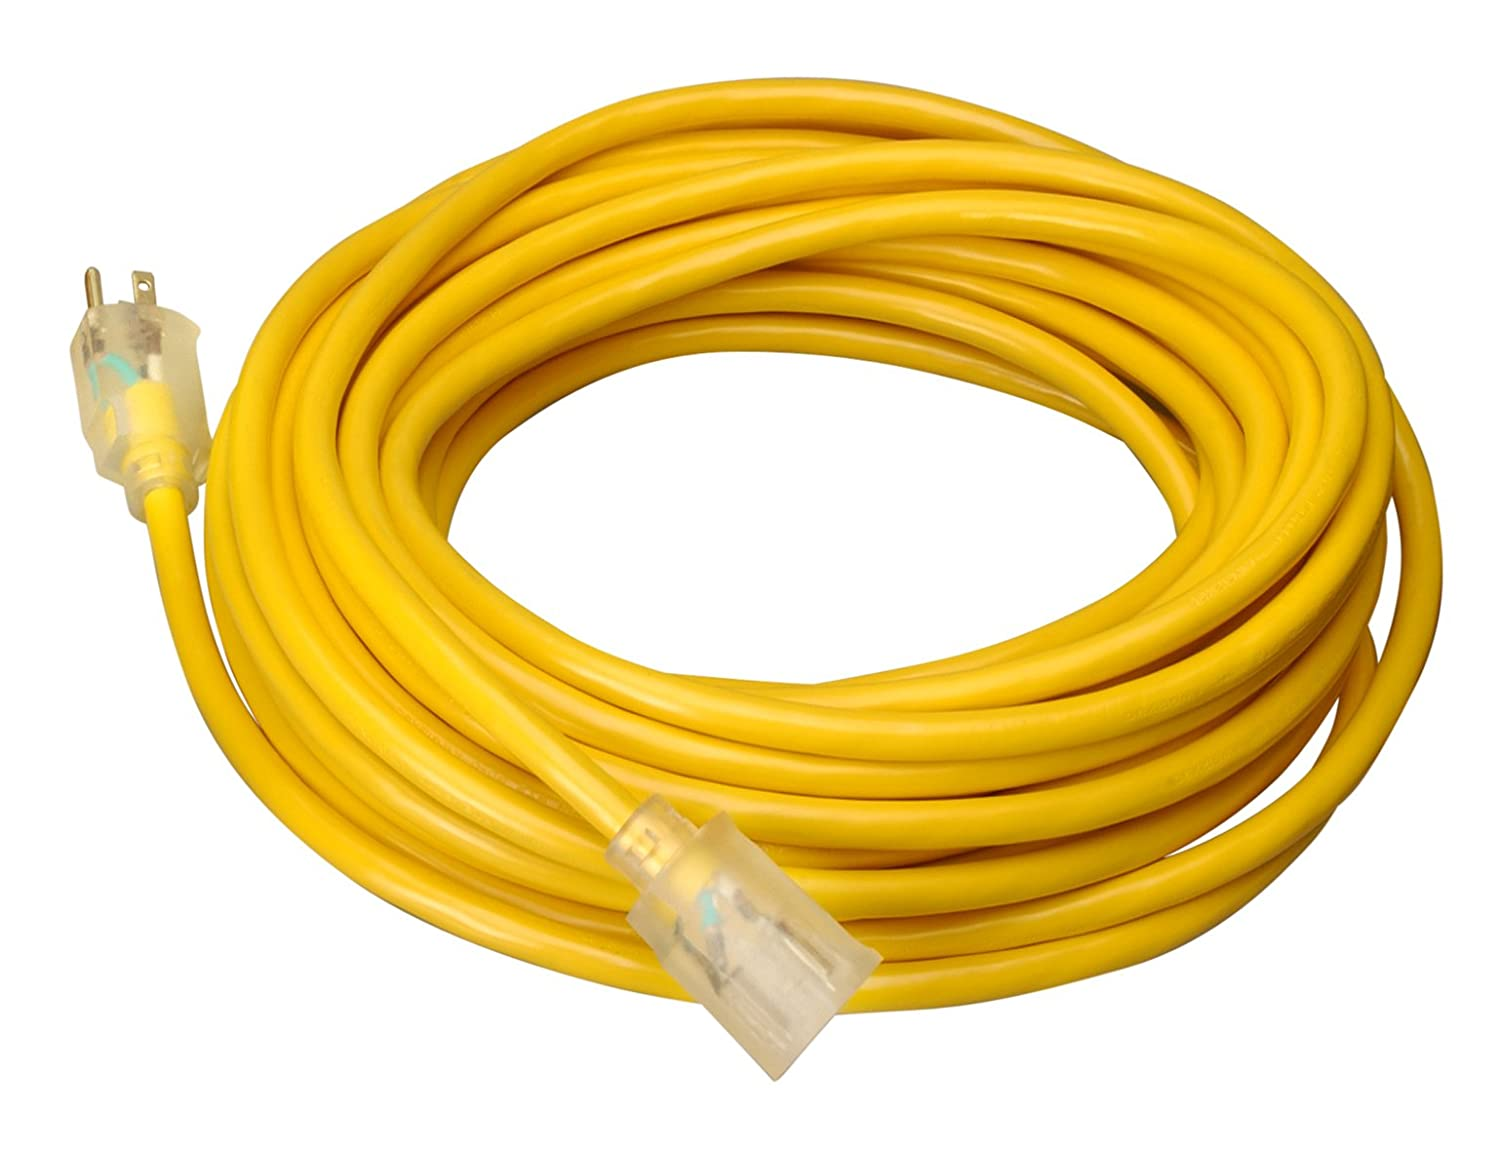 Coleman Cable 02689 10/3 Vinyl Outdoor Extension Cord with Lighted ...